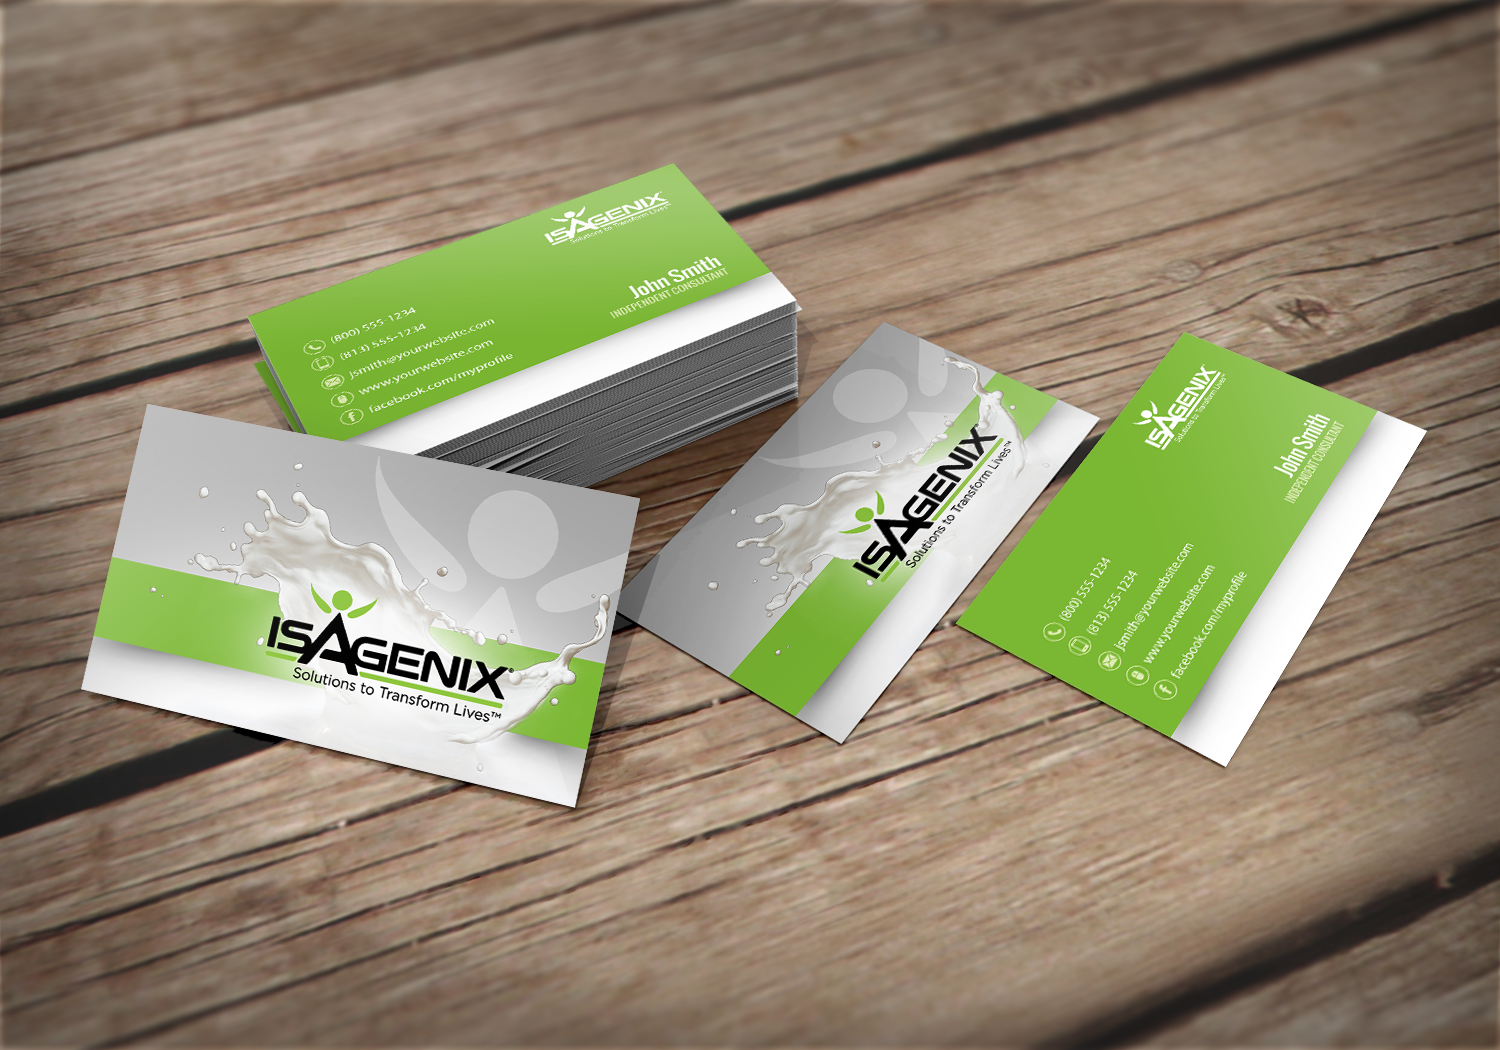 Isagenix Business Cards Are Here For All Consultants Mlm Isagenix Print Paper Graphicdesig Isagenix Business Cards Isagenix Business Free Business Cards